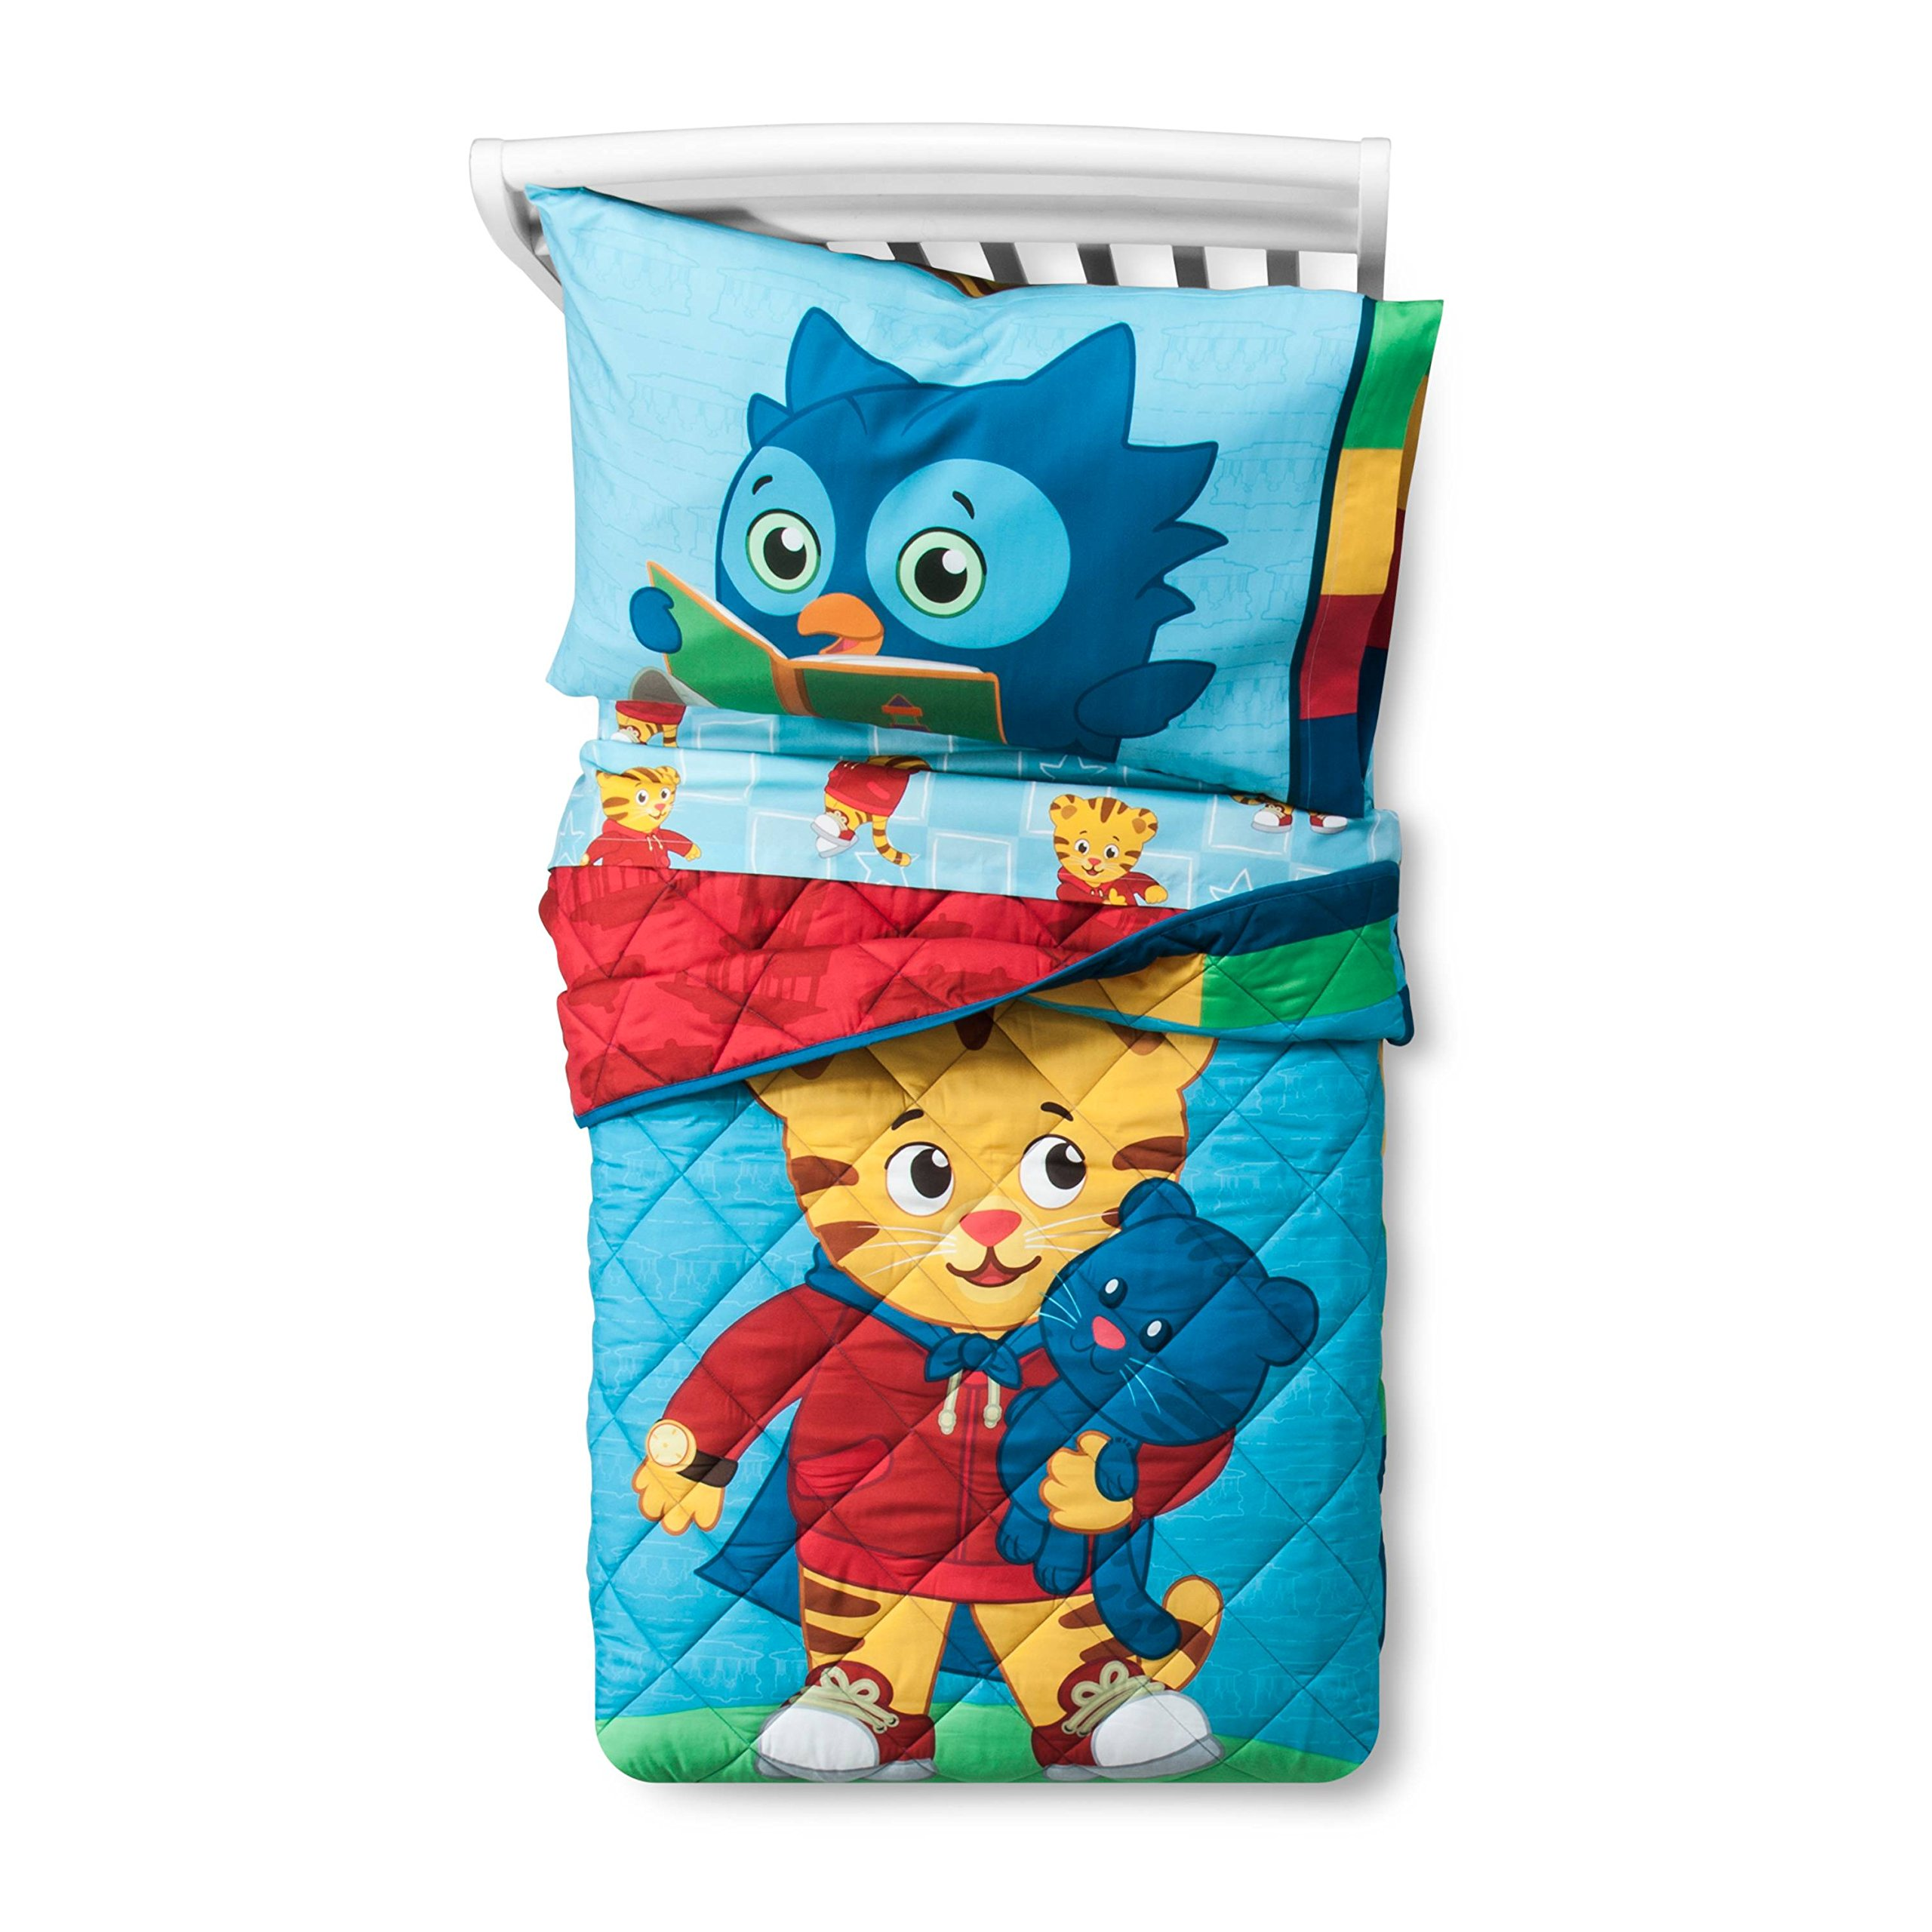 PBS Kids Daniel Tiger Bedding (Blue Toddler Bed)